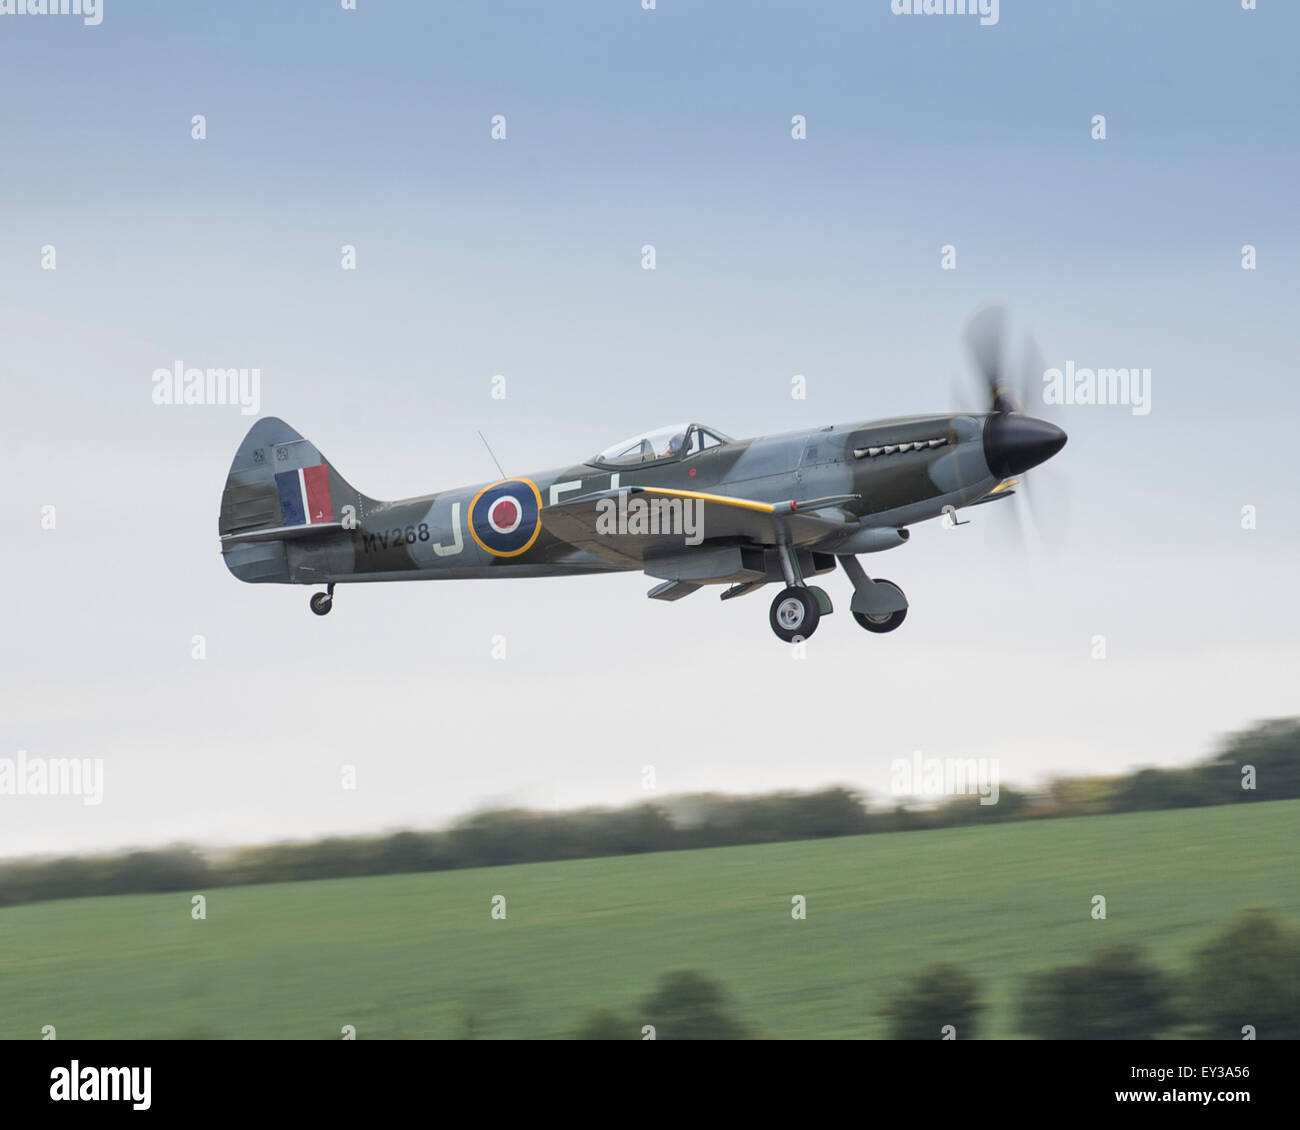 Supermarine Spitfire FR XIV of The Fighter Collection at the 2015 Flying Legends air show - Stock Image